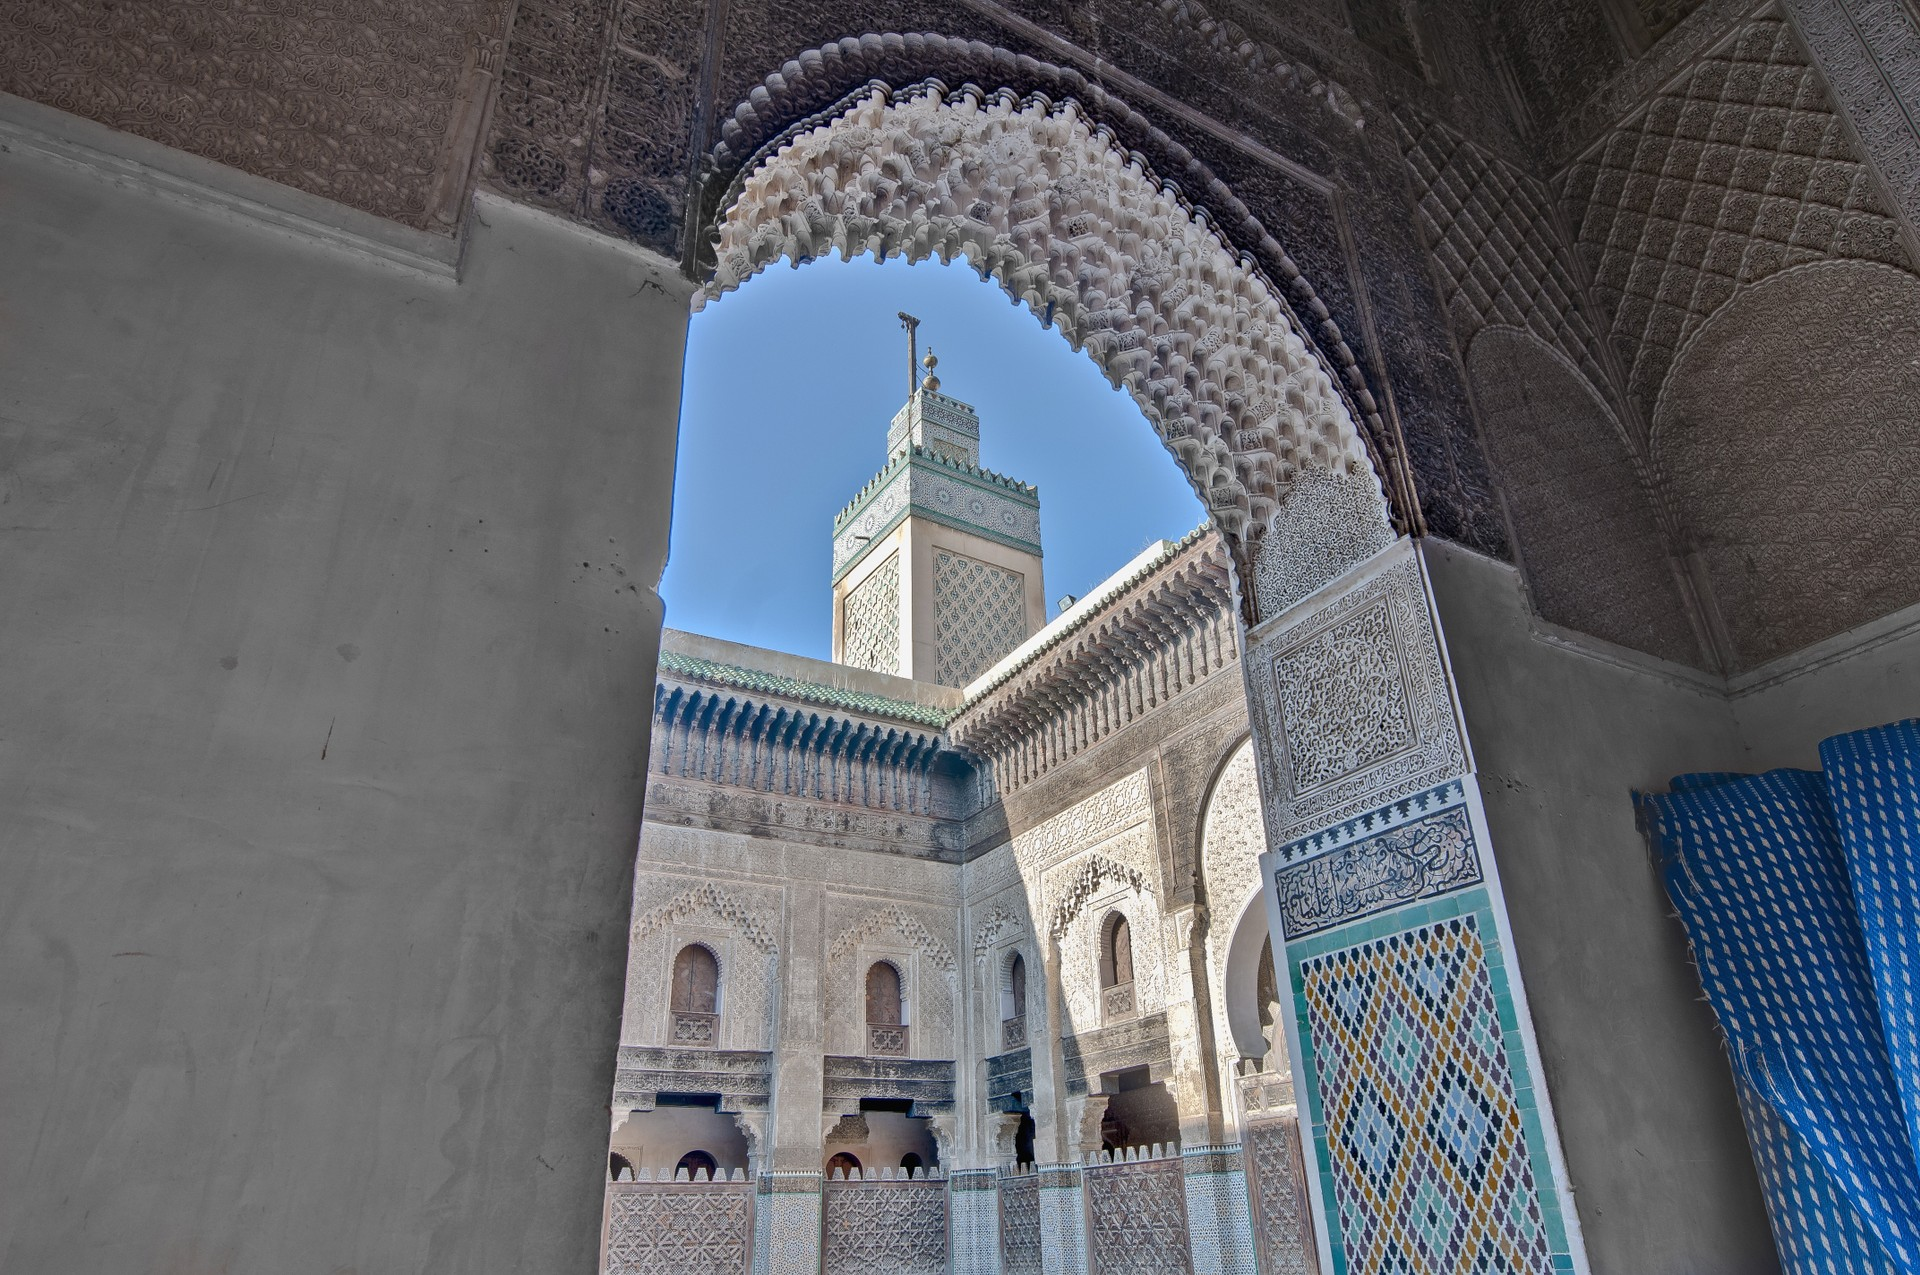 The intricate walls and blue minaret of the Medersa Bou Inania in Fes, Morocco